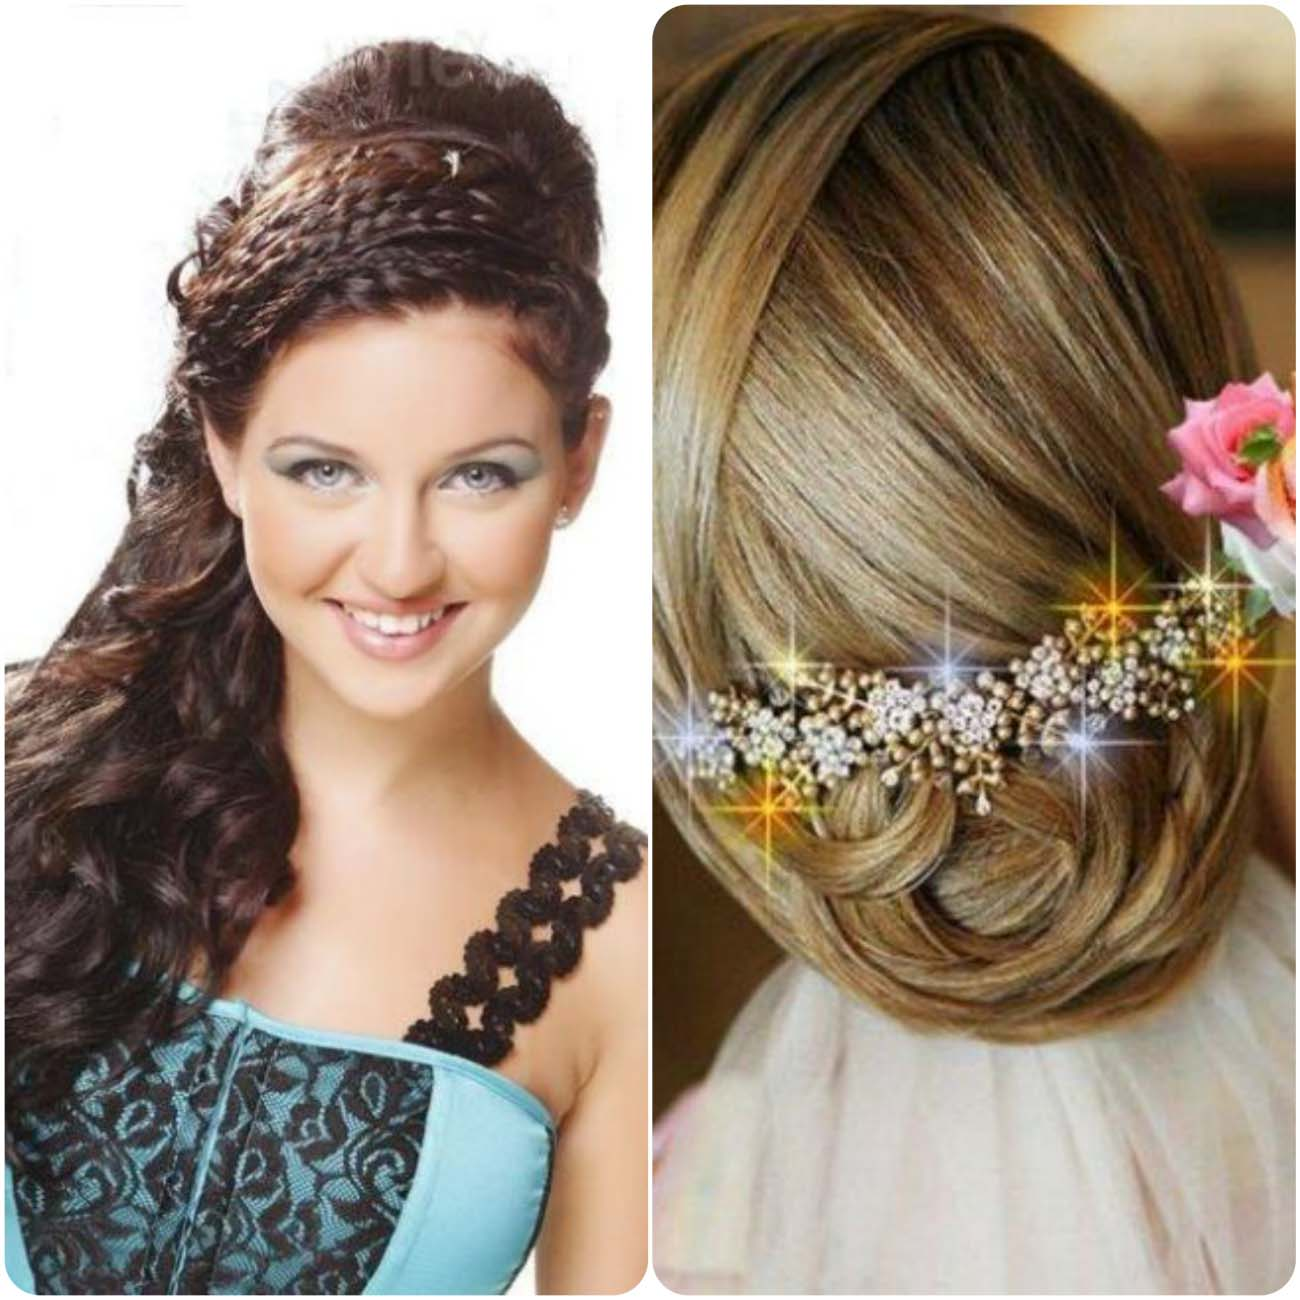 Phenomenal Party Hairstyles Step By Step 2016 Stylo Planet Hairstyles For Women Draintrainus